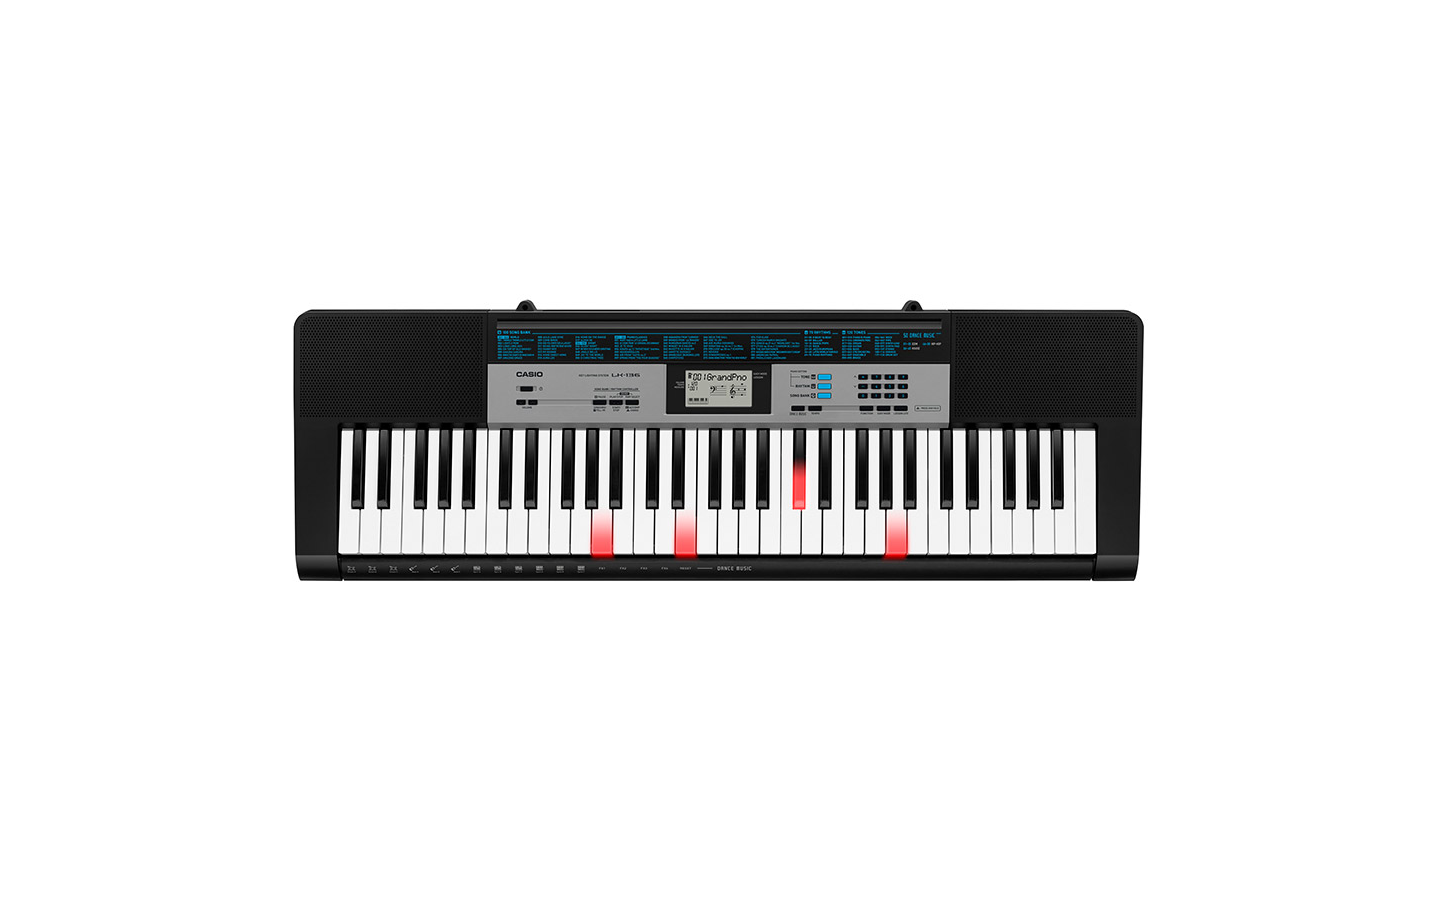 LK136 Tastiera 61 tasti luminosi stile piano, poli.32 note CASIO